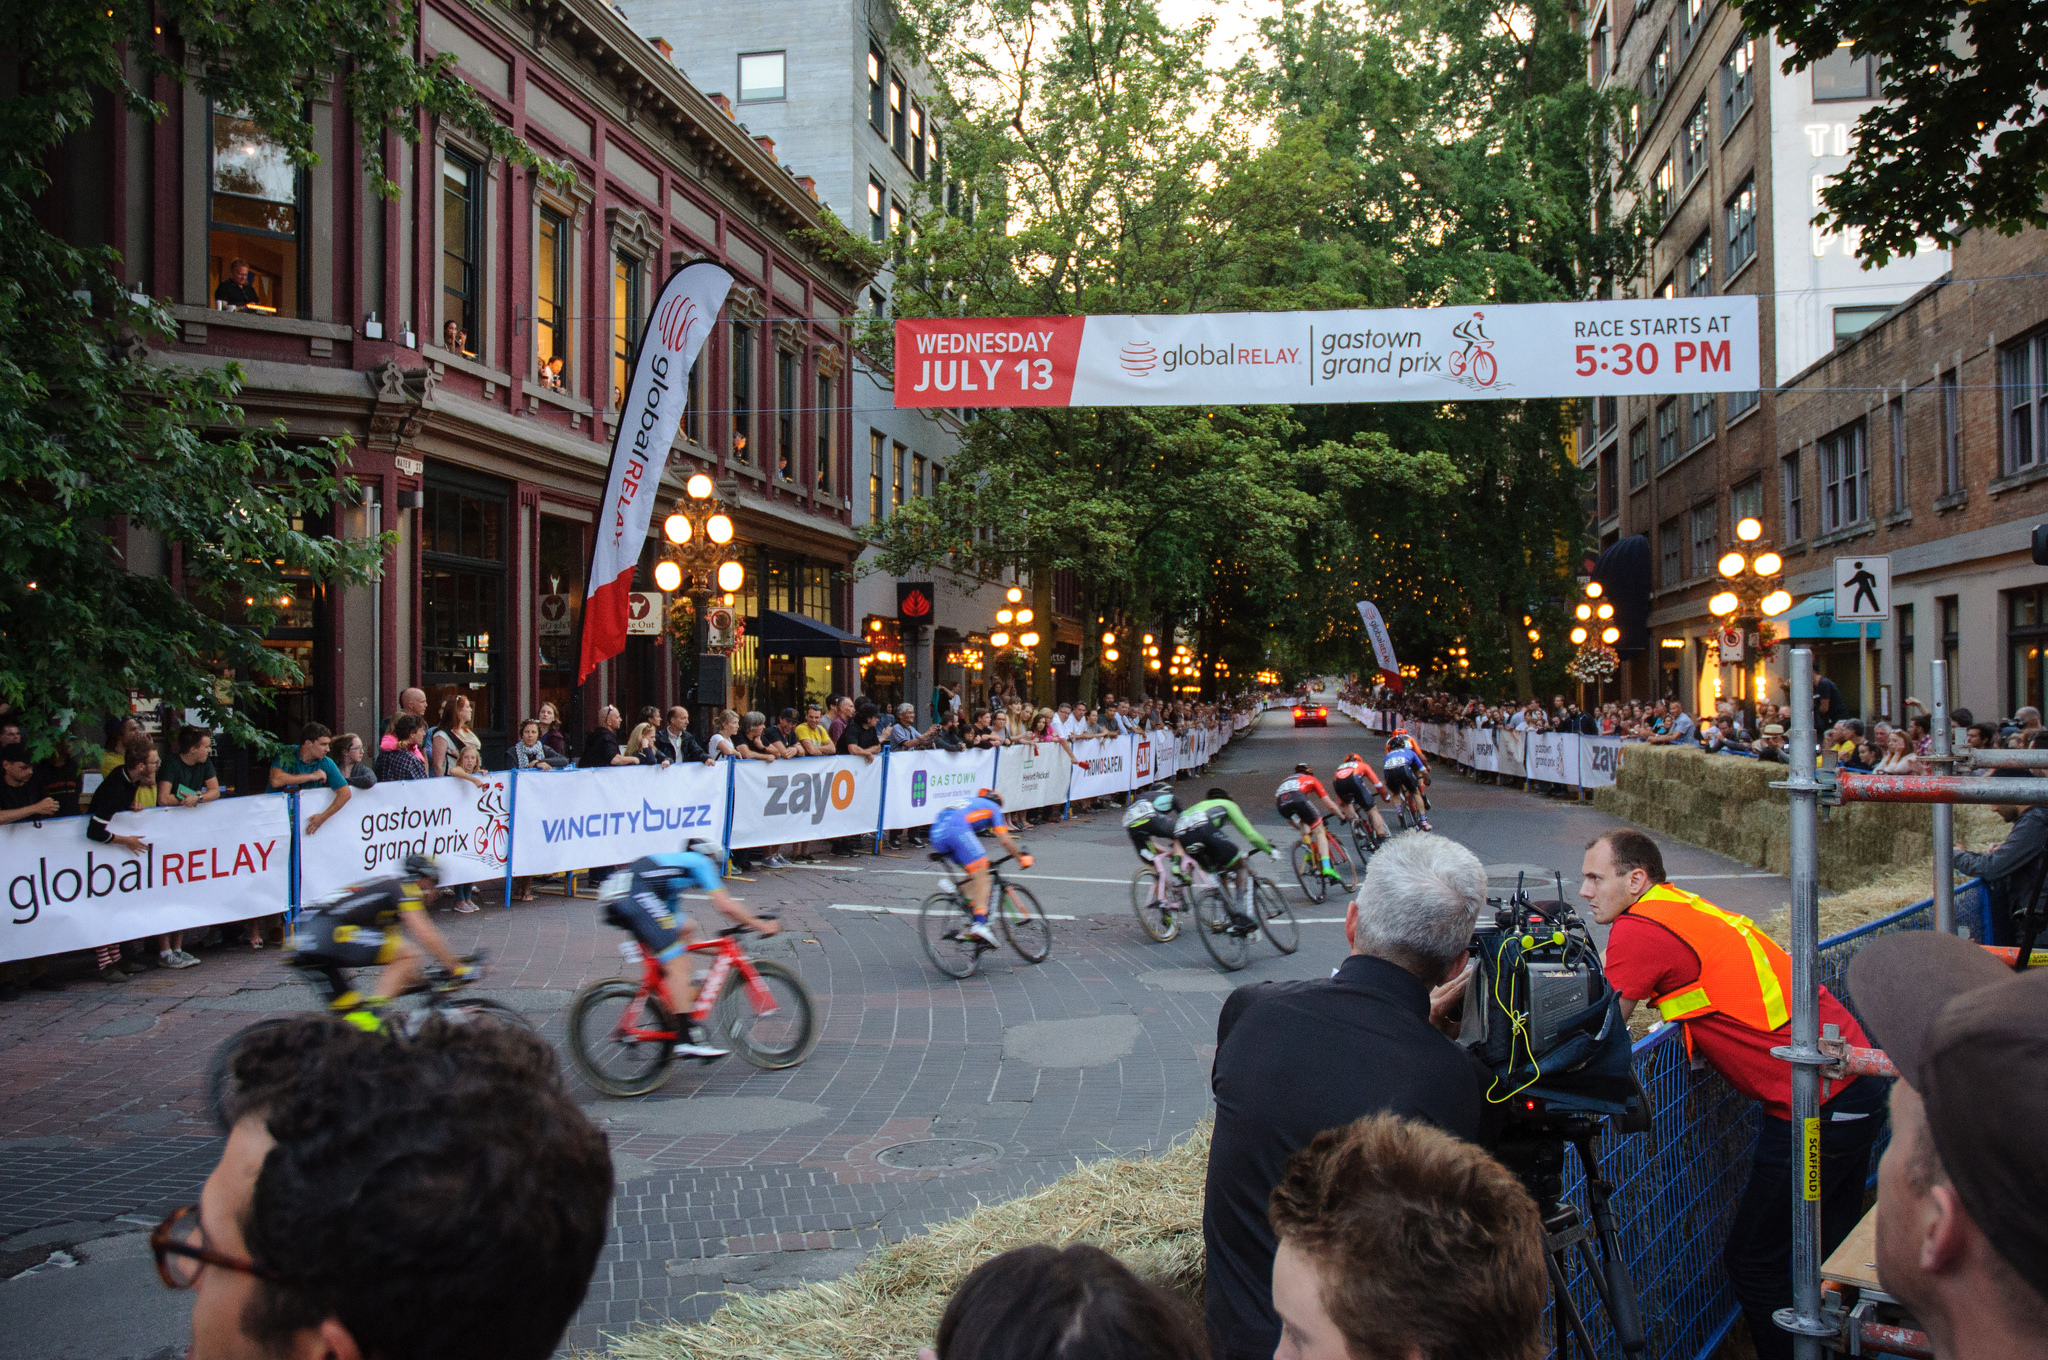 Gastown Grand Prix 2016 (31).jpg